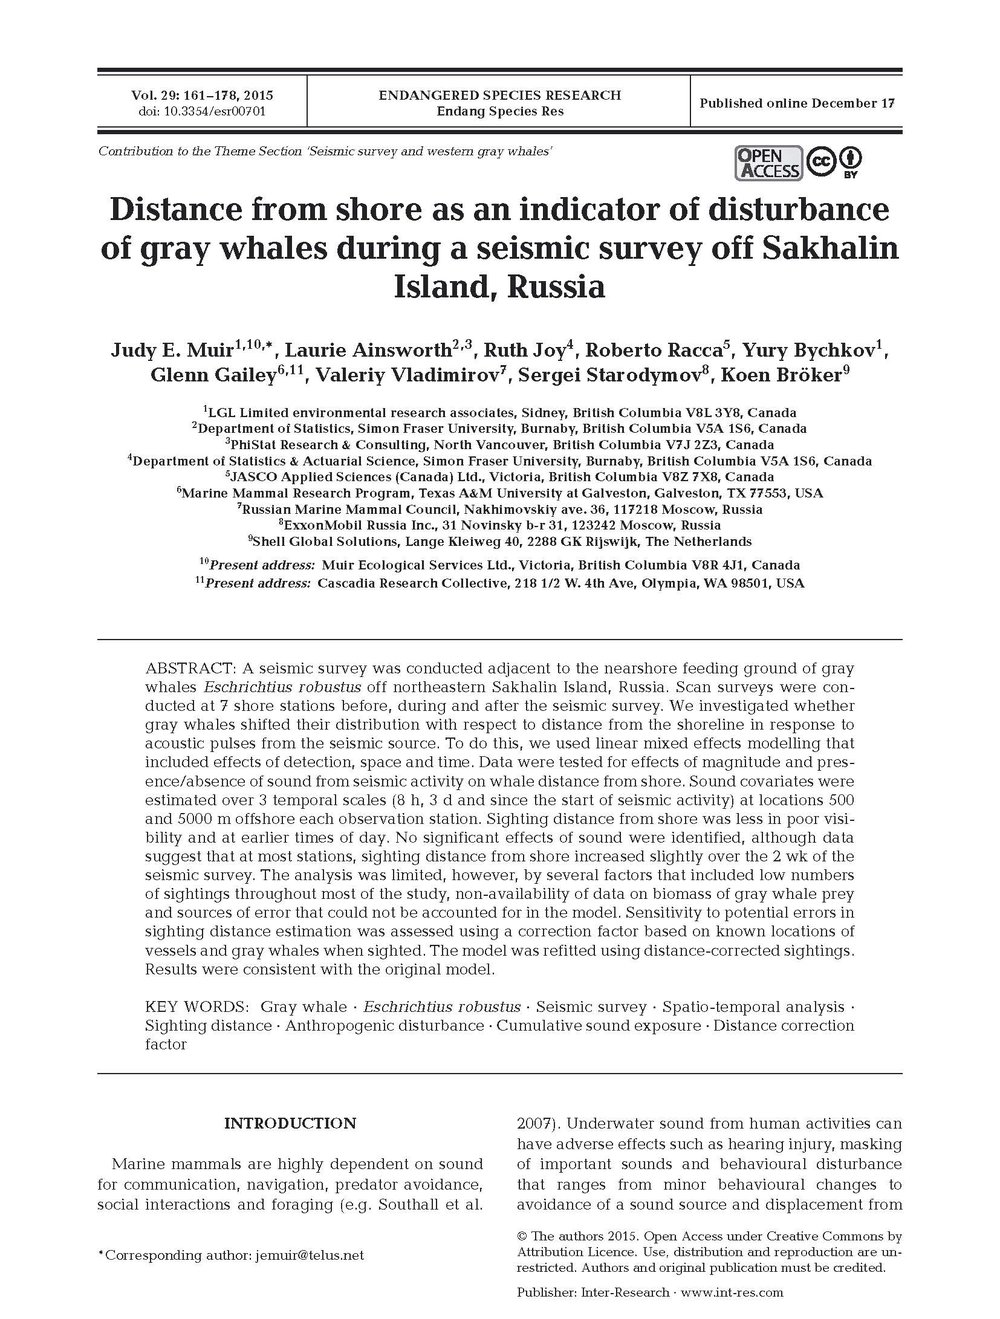 - Muir, J.E., L. Ainsworth, R. Joy, R. Racca, Y. Bychkov, G. Gailey, V. Vladmirov, S. Starodymov, and K. Bröker. 2015. Distance from shore as an indicator of disturbance of gray whales during a seismic survey off Sakhalin Island, Russia. Endang. Species Res. 29: 161-178.http://www.int-res.com/articles/esr2016/29/n029p161.pdf